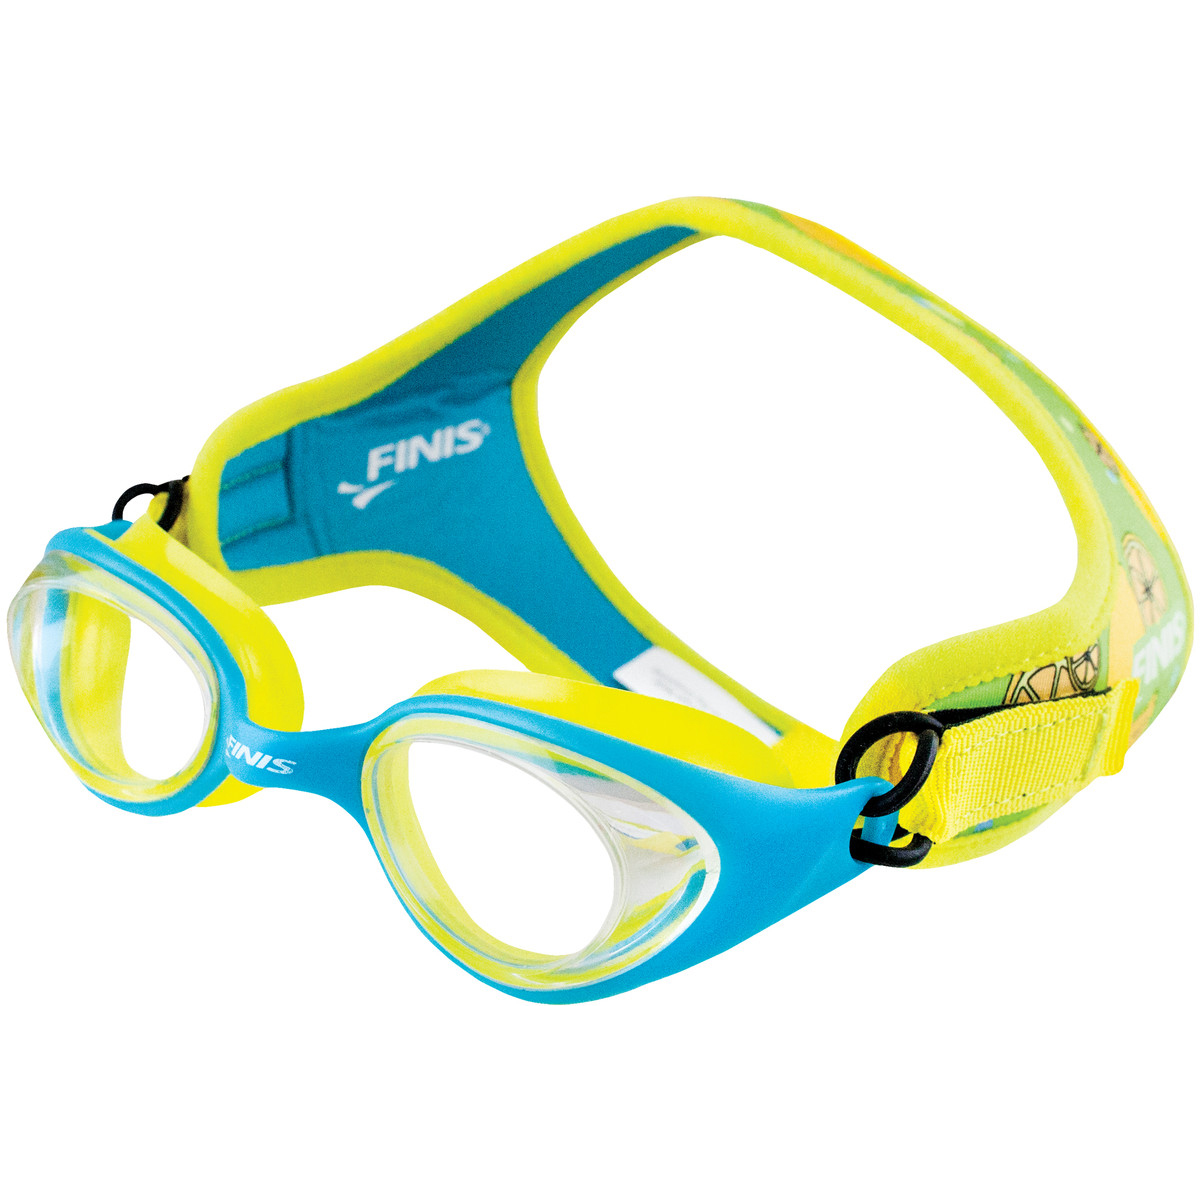 FINIS Frogglez Goggles Kids Swim Goggles Lemon with Clear Lenses